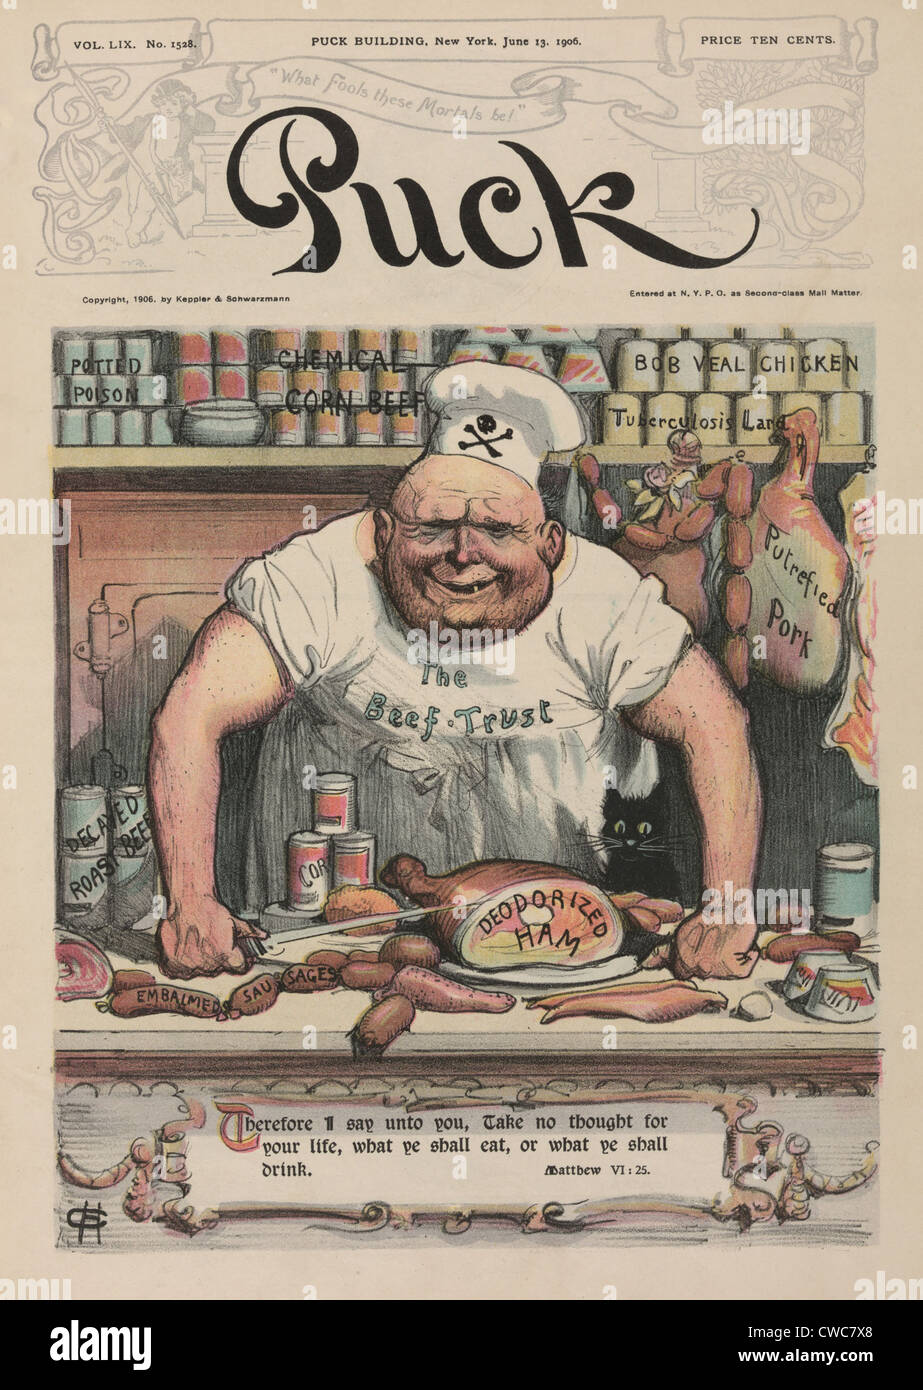 the meat market a 1906 cartoon by carl hassmann shows a butcher with